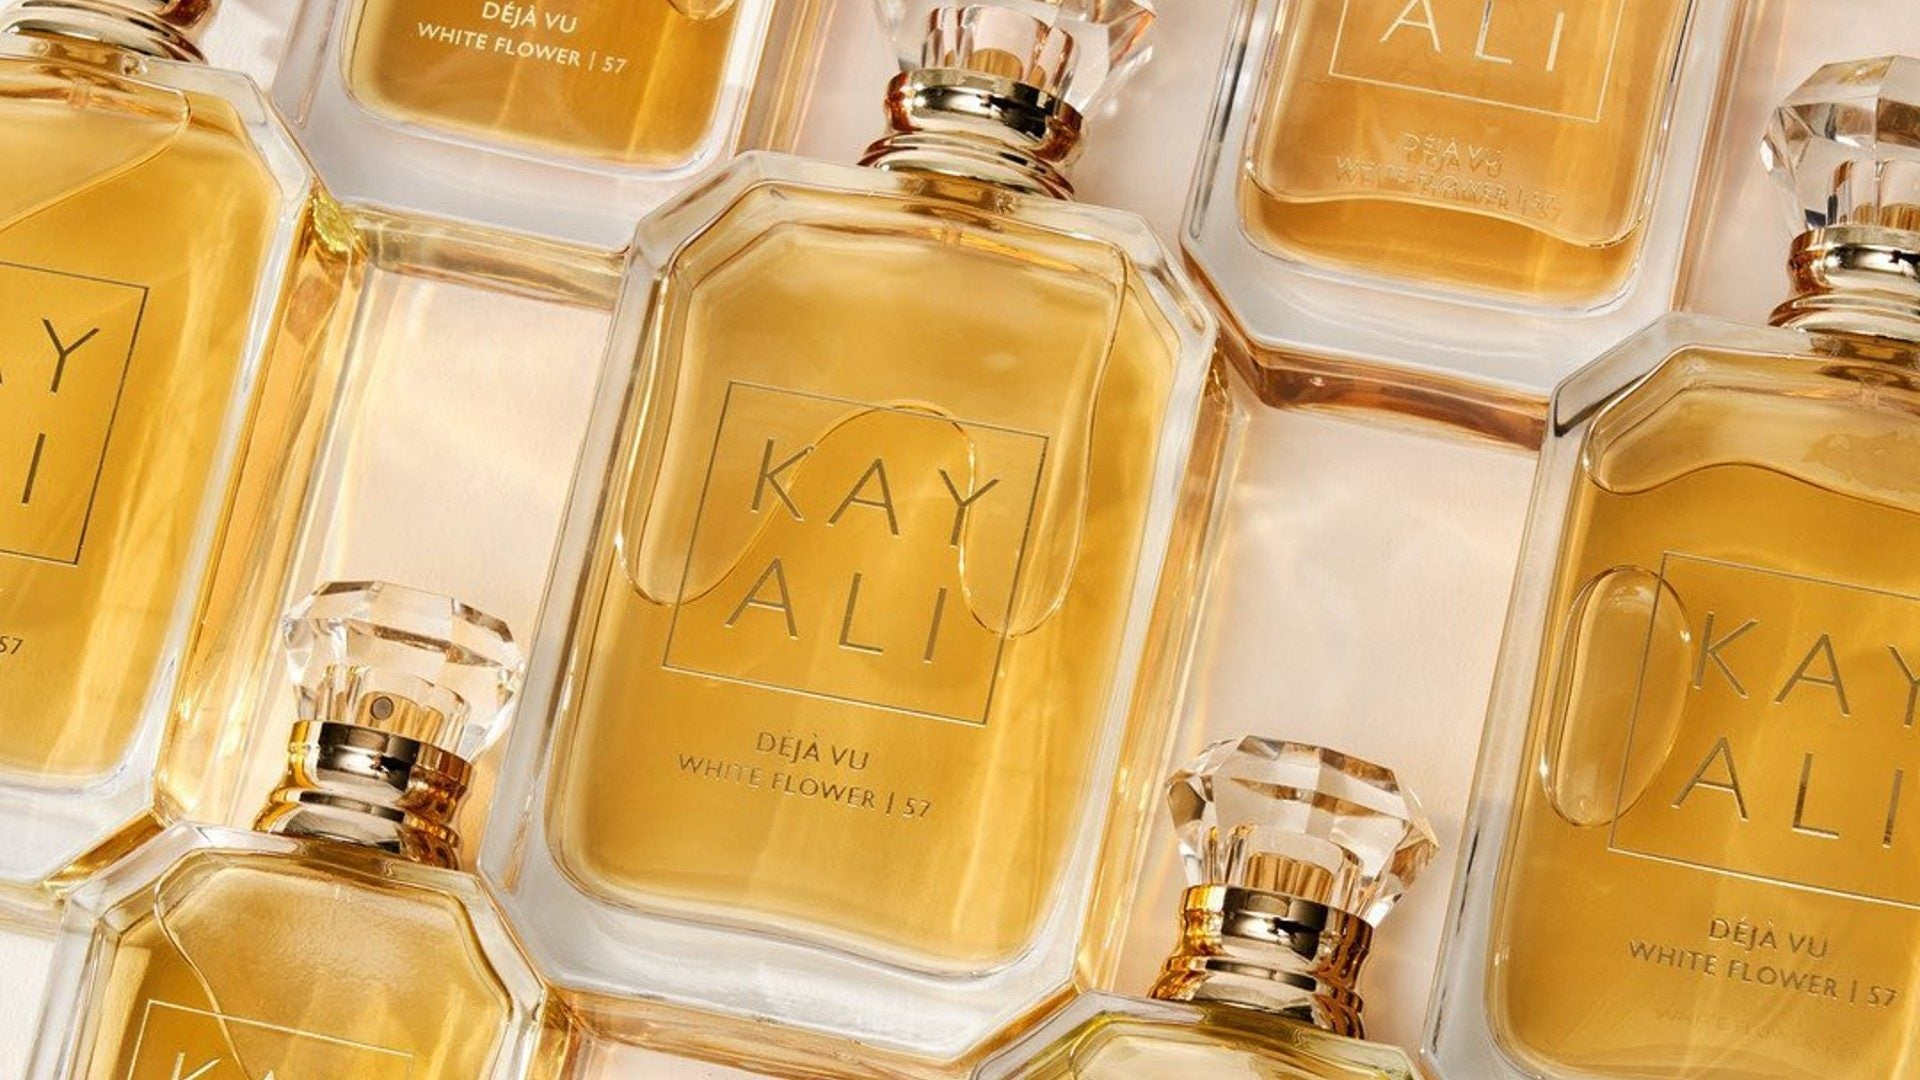 25 New Fragrances To Add To Your Vanity This Fall